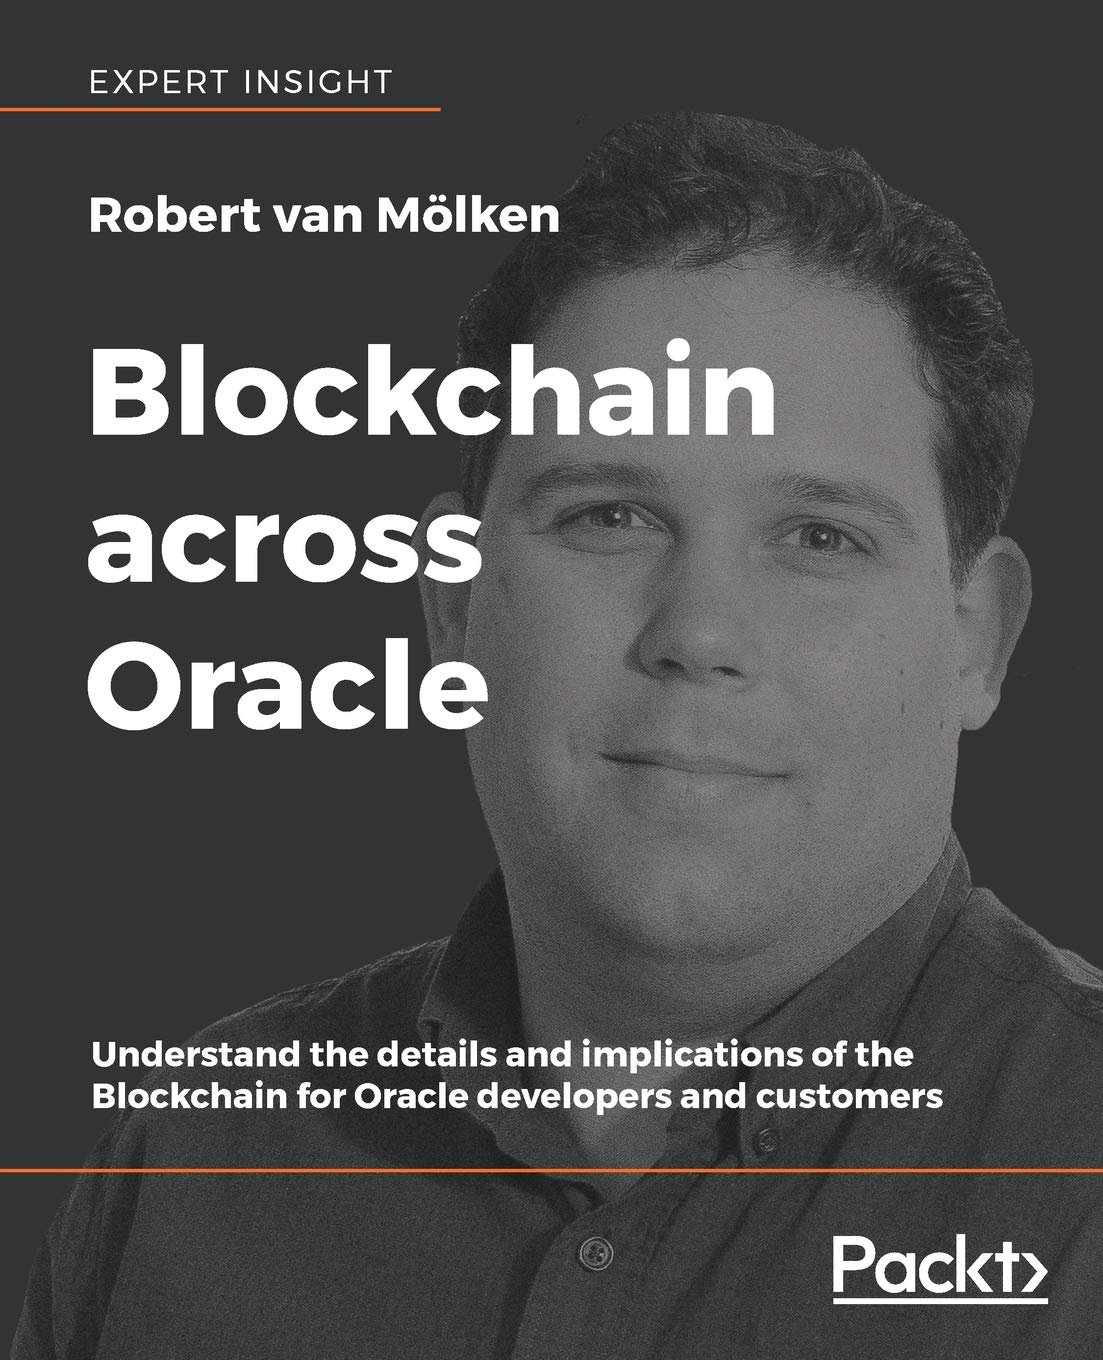 Blockchain across Oracle: Understand the details and implications of the Blockchain for Oracle developers and customers